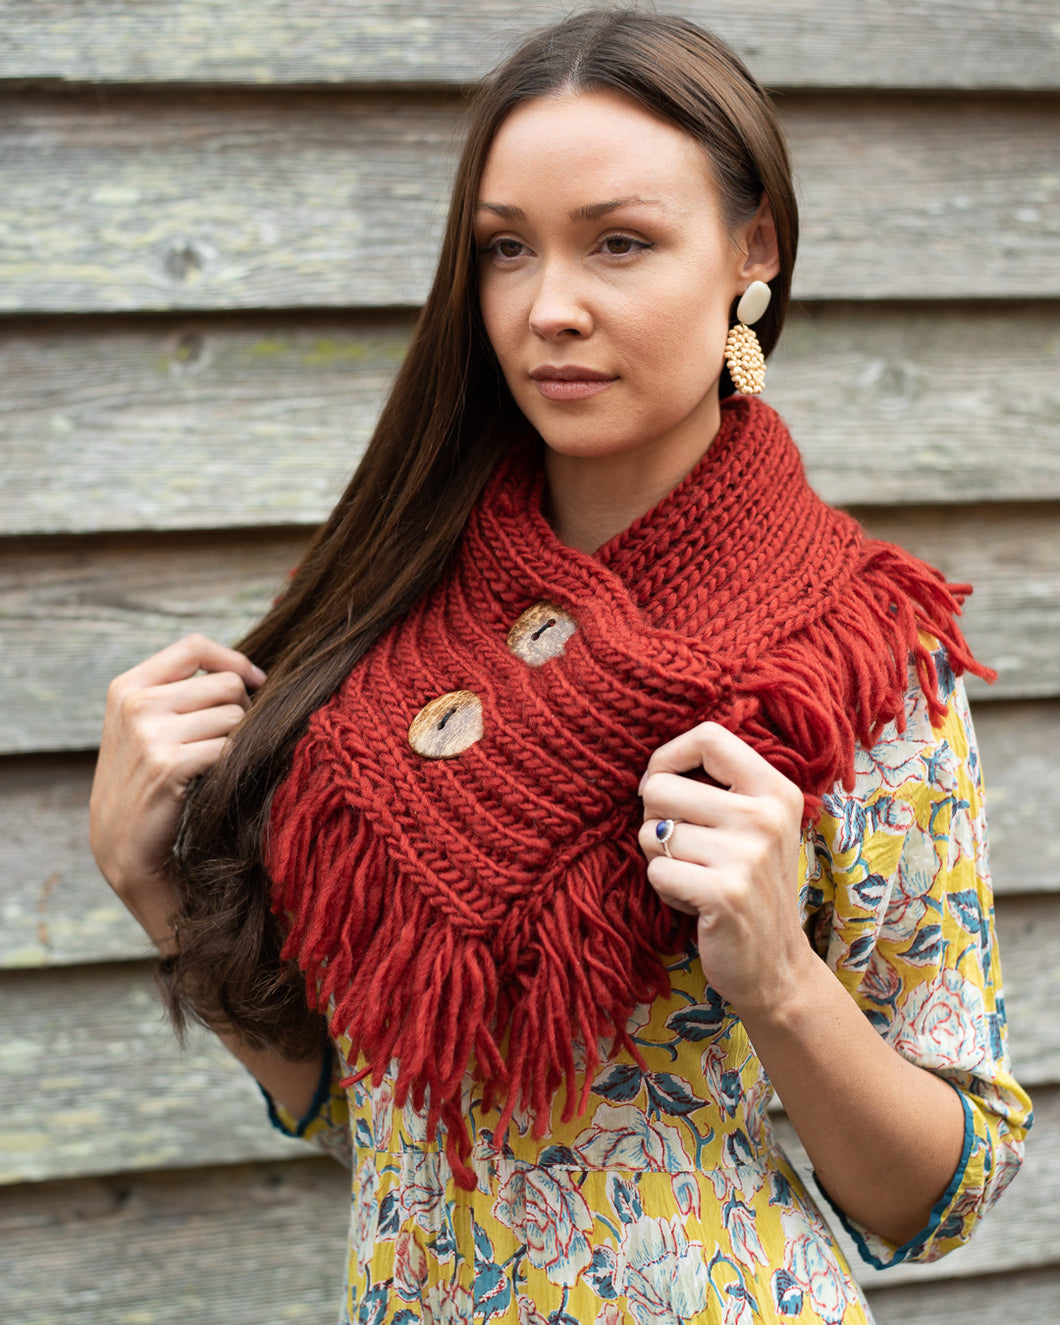 Chunky Knit Rusty Red Neck Shrug Scarf - Beths Emporium